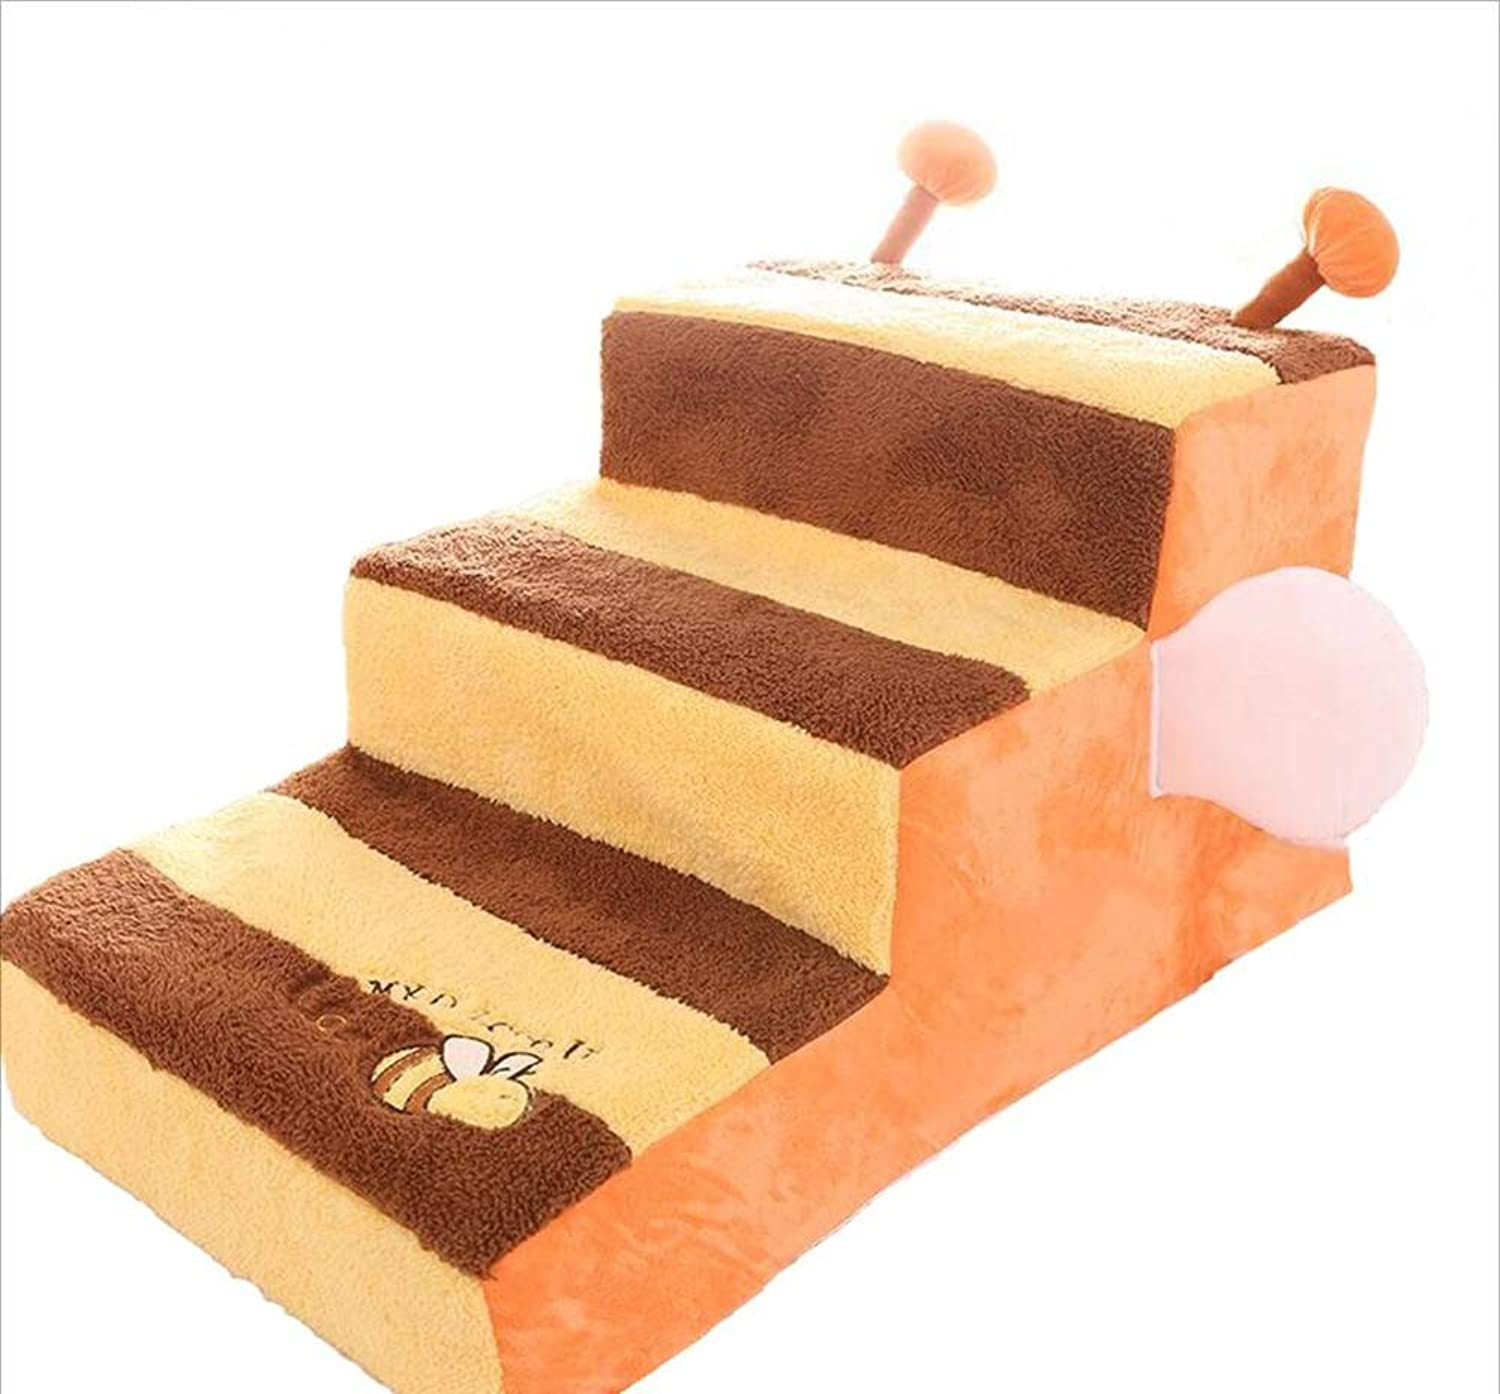 MODYL Pet cat dog with bed climbing stairs bed stairs Teddy small dog threelayer removable sponge slope